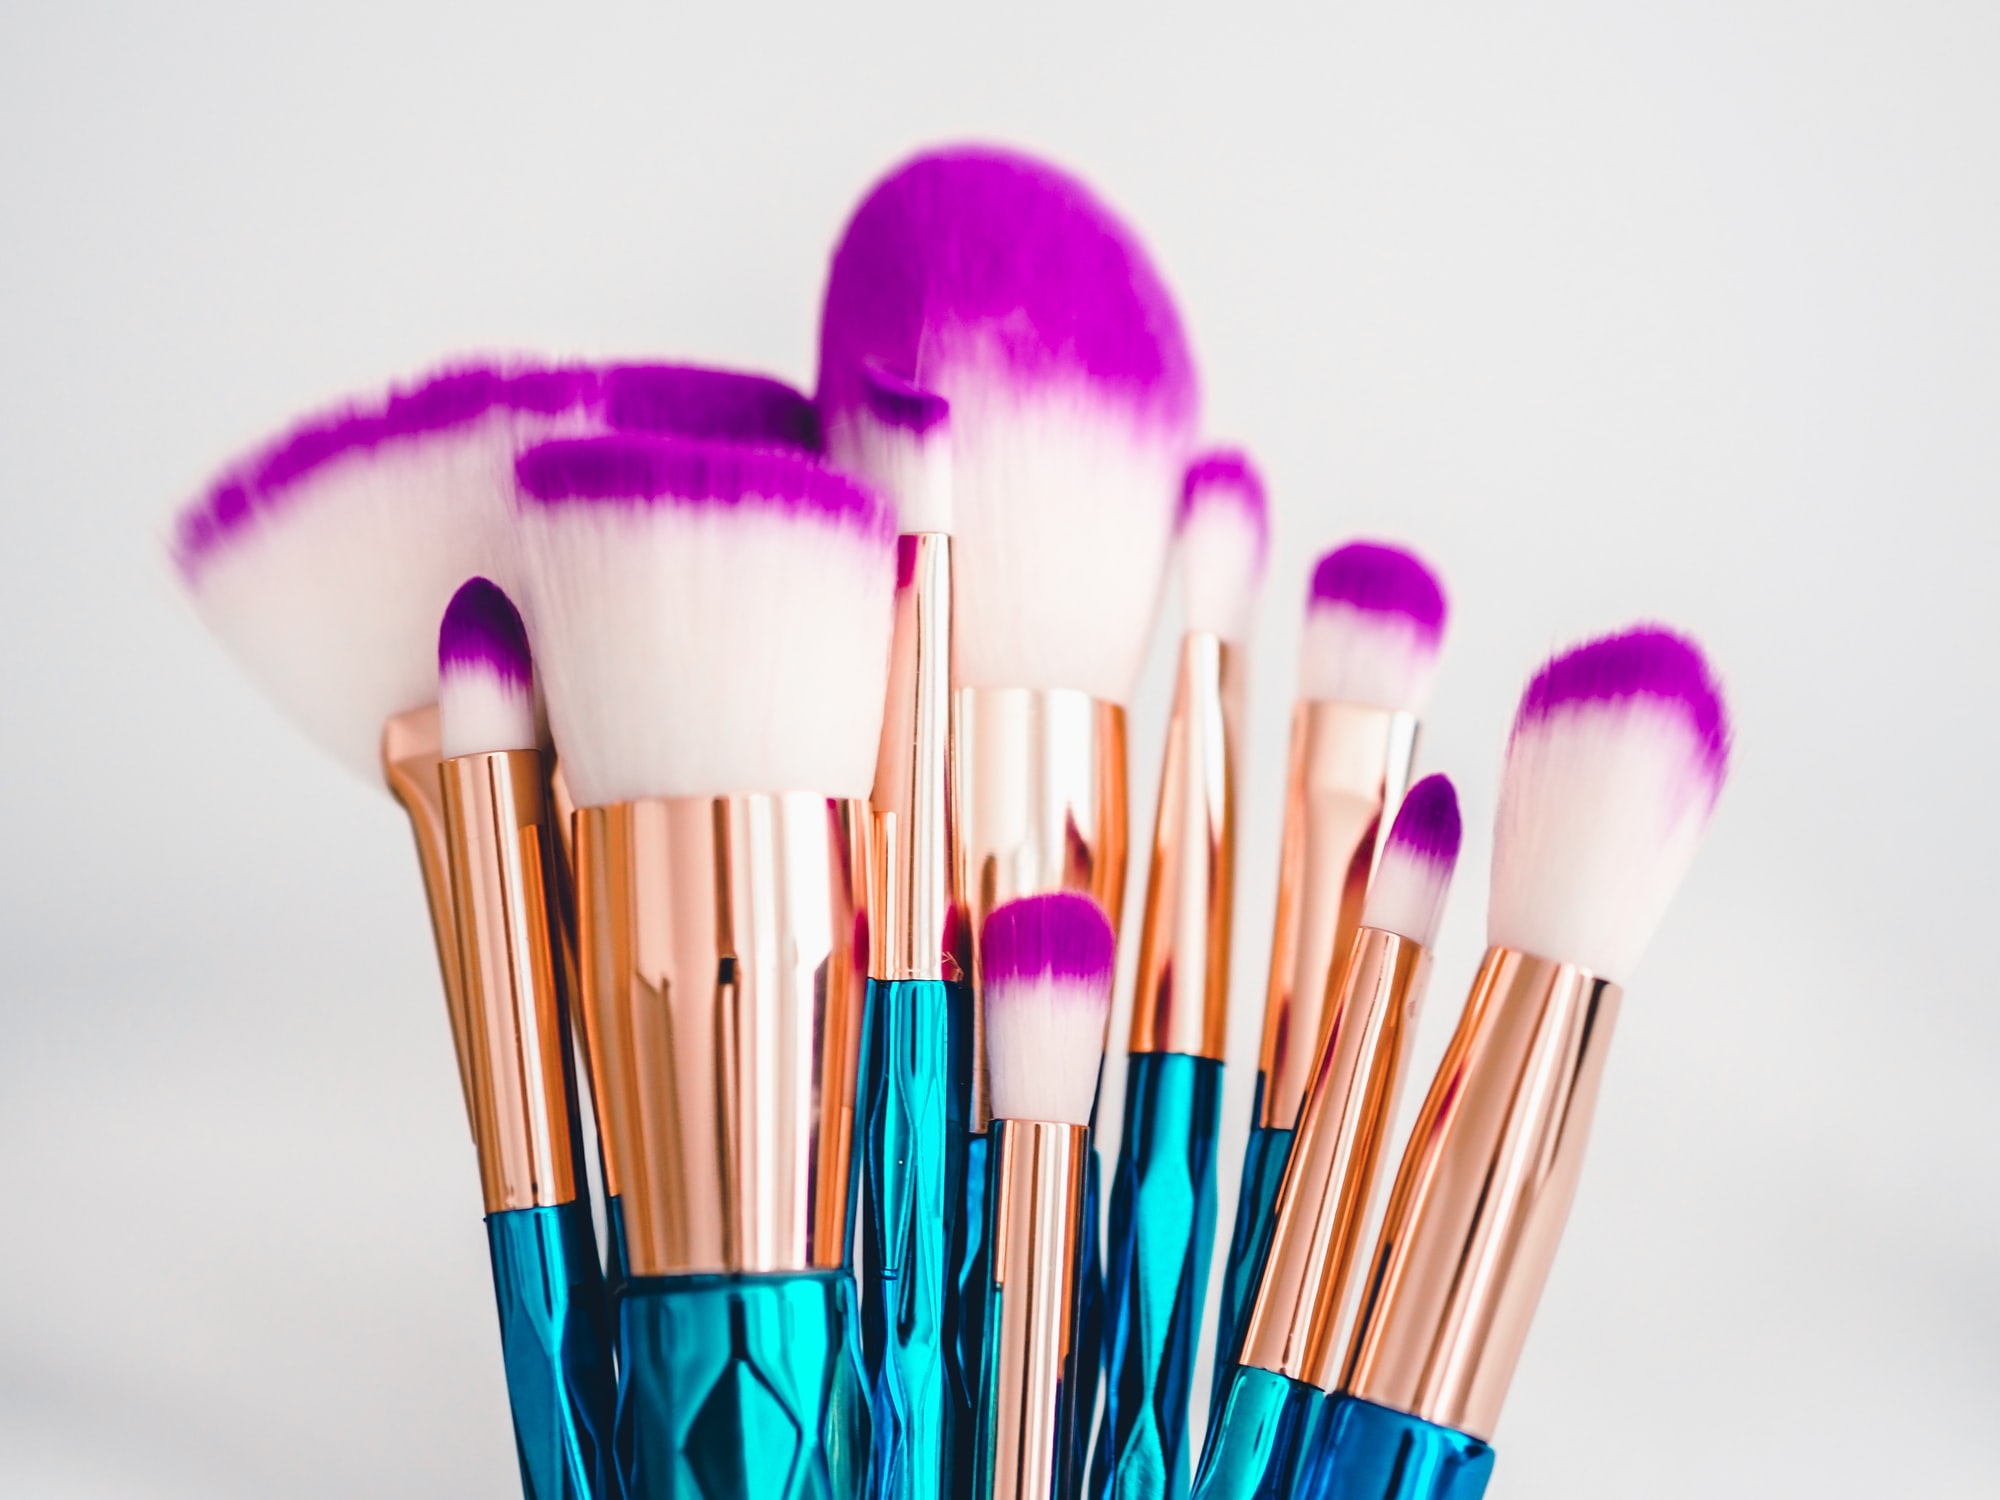 Instagram: @LauraChouette 📸 and www.laurachouette.com 🌐 MakeUp Brushes- Fashion Beauty Cosmetic Product ✨